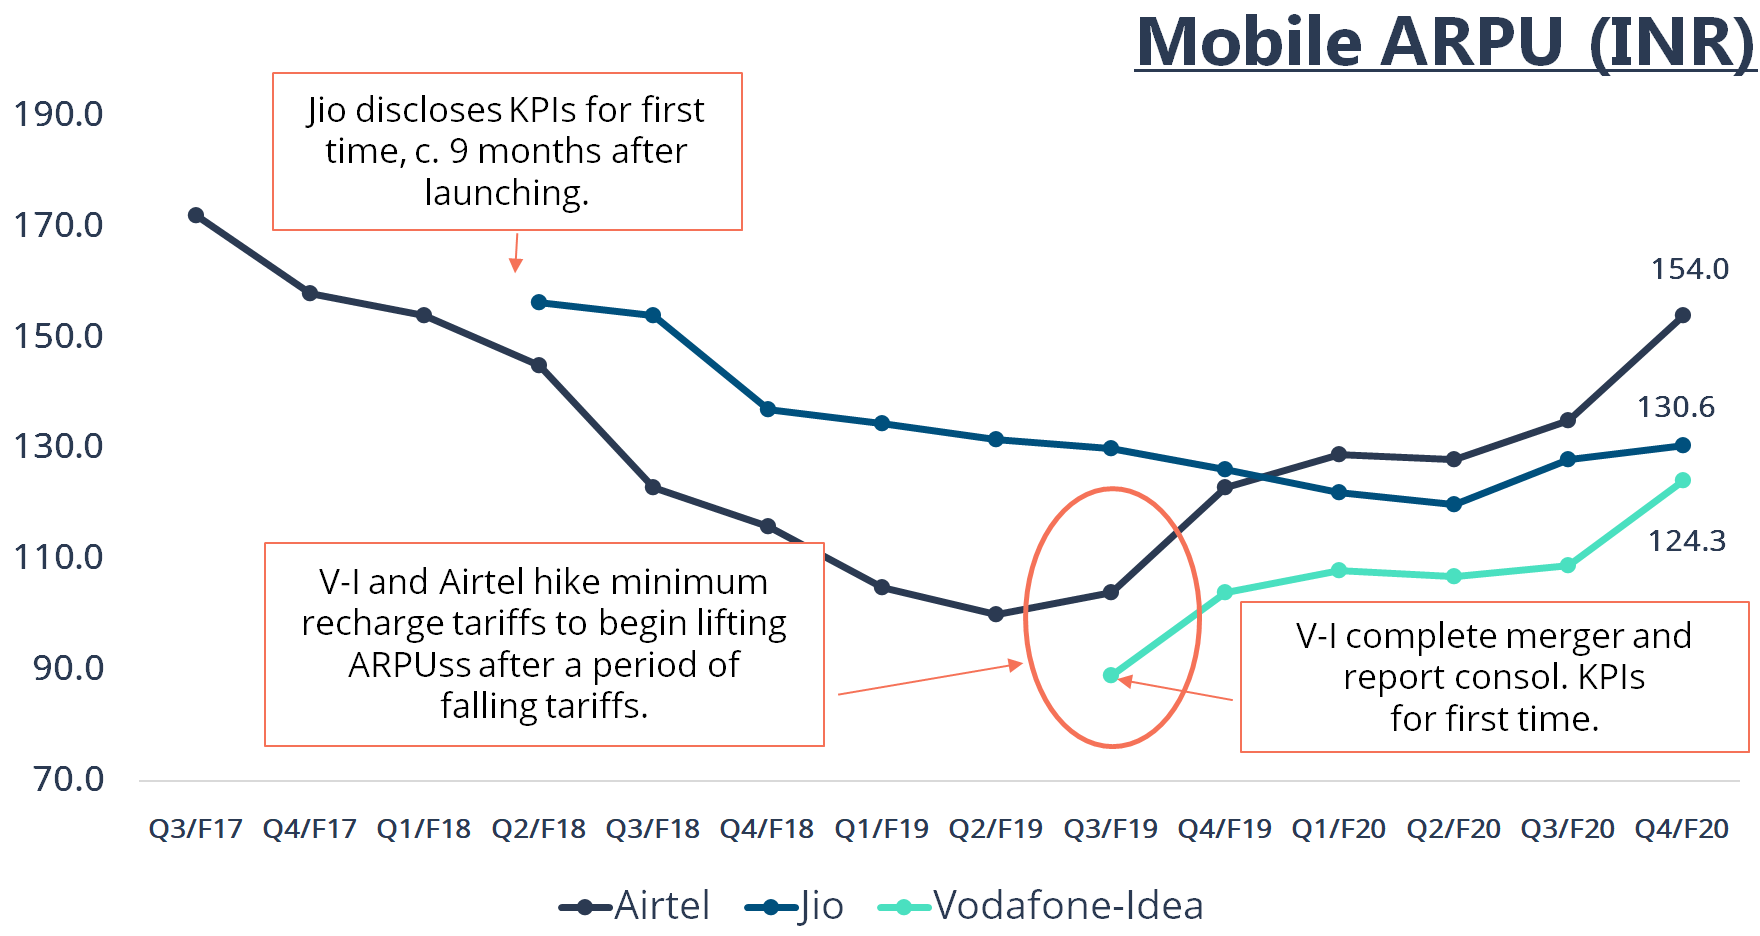 Why the World's Looking at Indian Telecom?